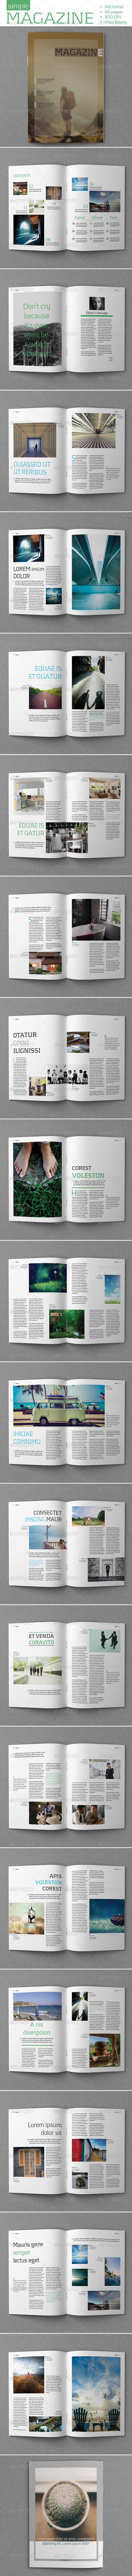 Simple Magazine template. - Magazines Print Templates